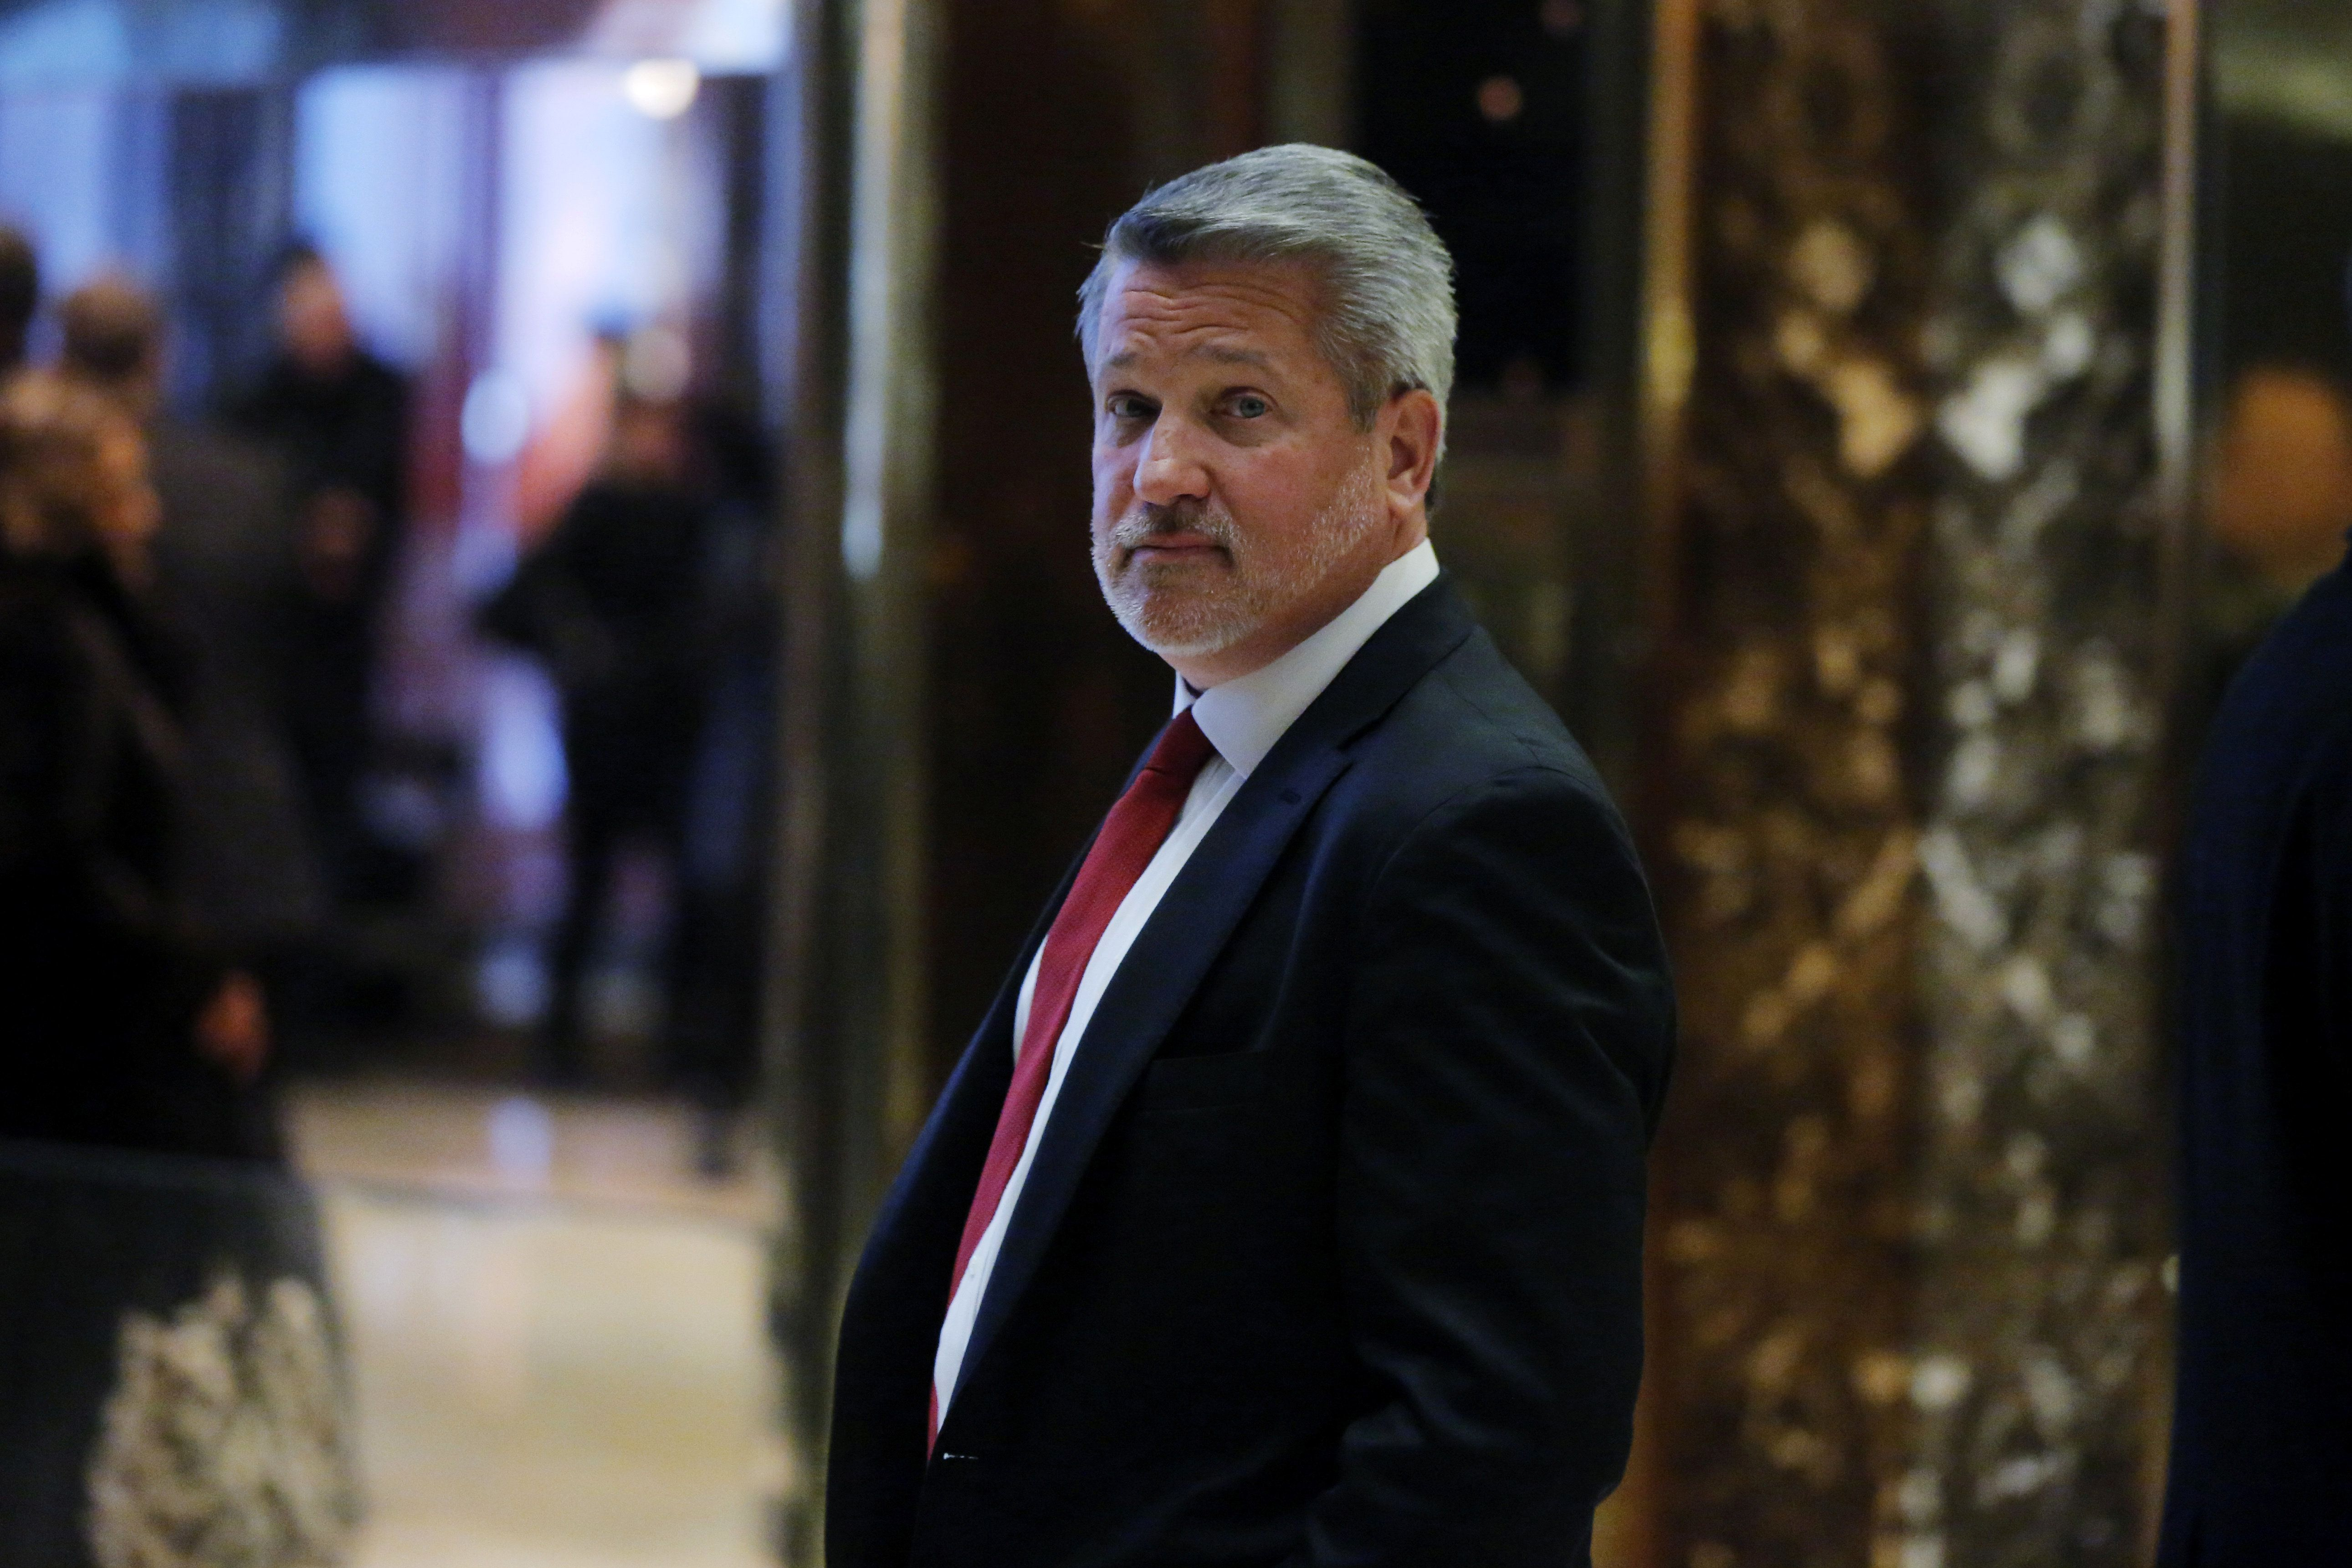 Fox News President Bill Shine departs after meeting with U.S. President-elect Donald Trump at Trump Tower in the Manhattan borough of New York, U.S., November 21, 2016.  REUTERS/Lucas Jackson